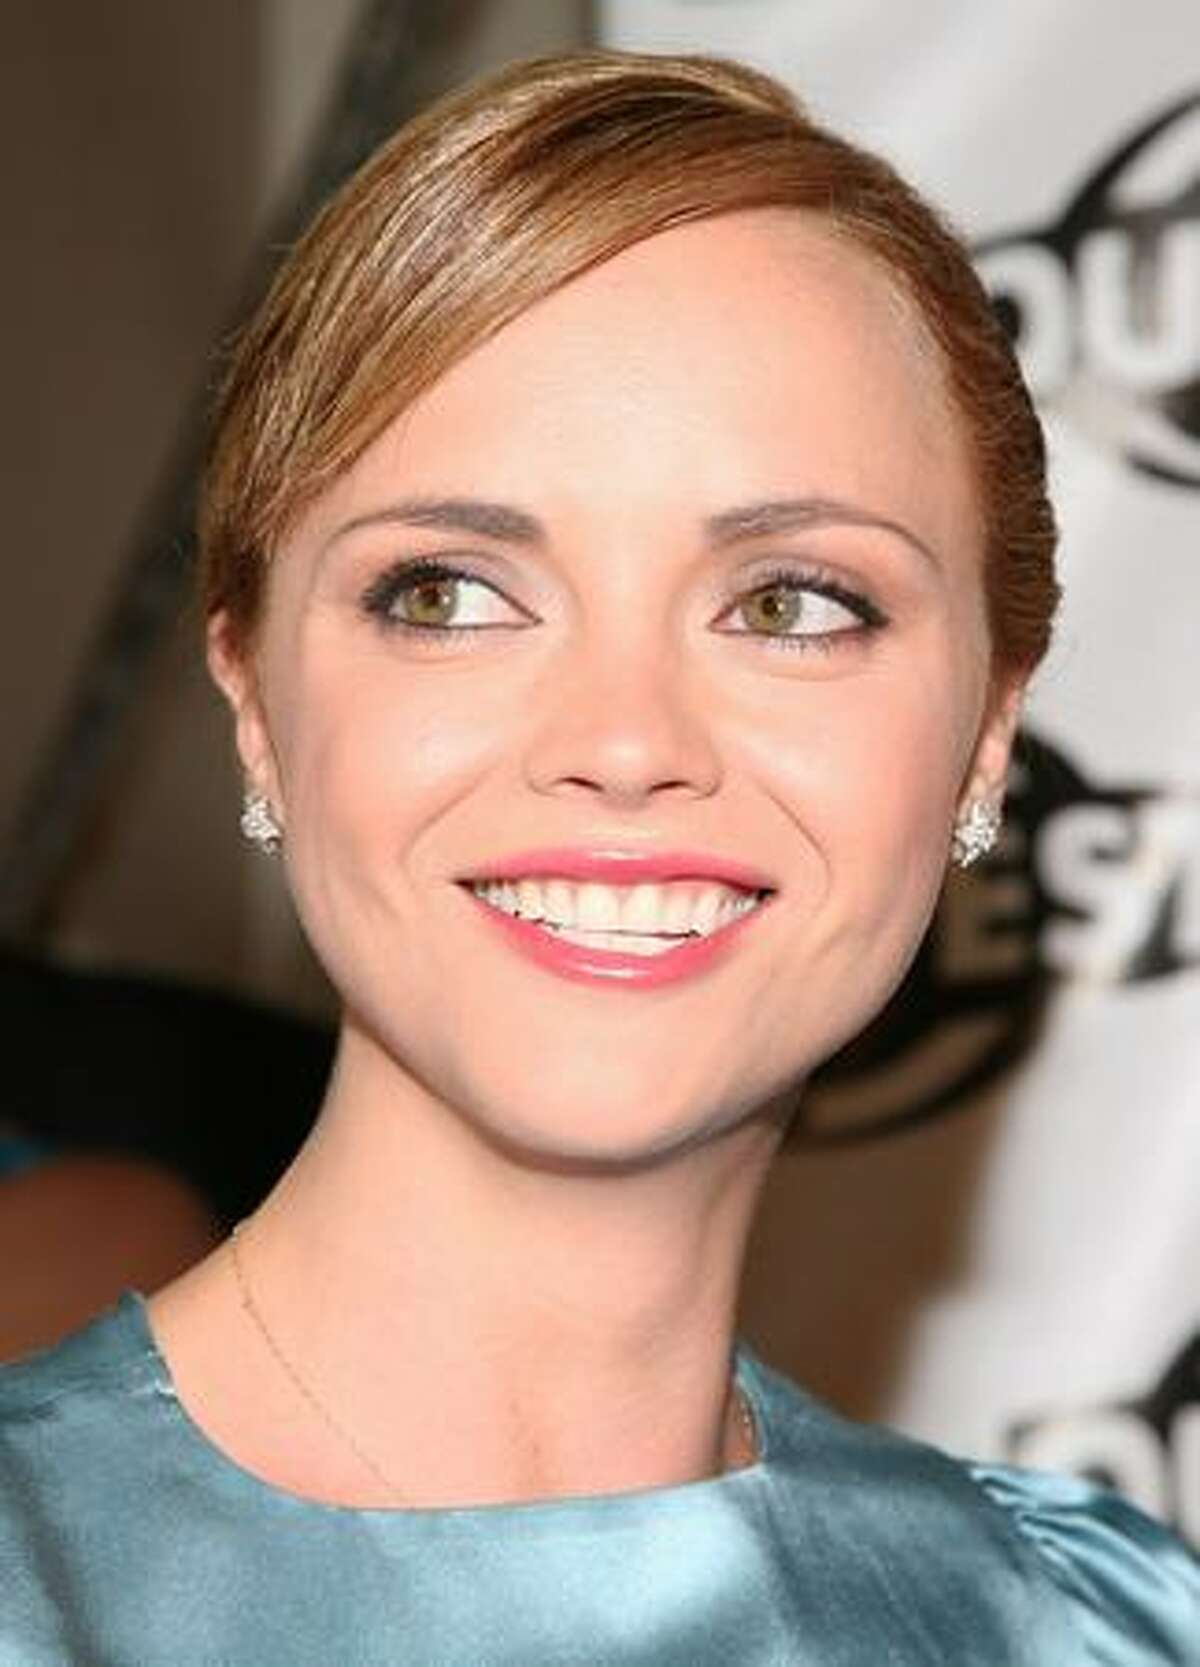 Actress Christina Ricci arrives to the 2009 Outfest opening night gala of 'La Mission' held at The Orpheum Theatre in Los Angeles, California.